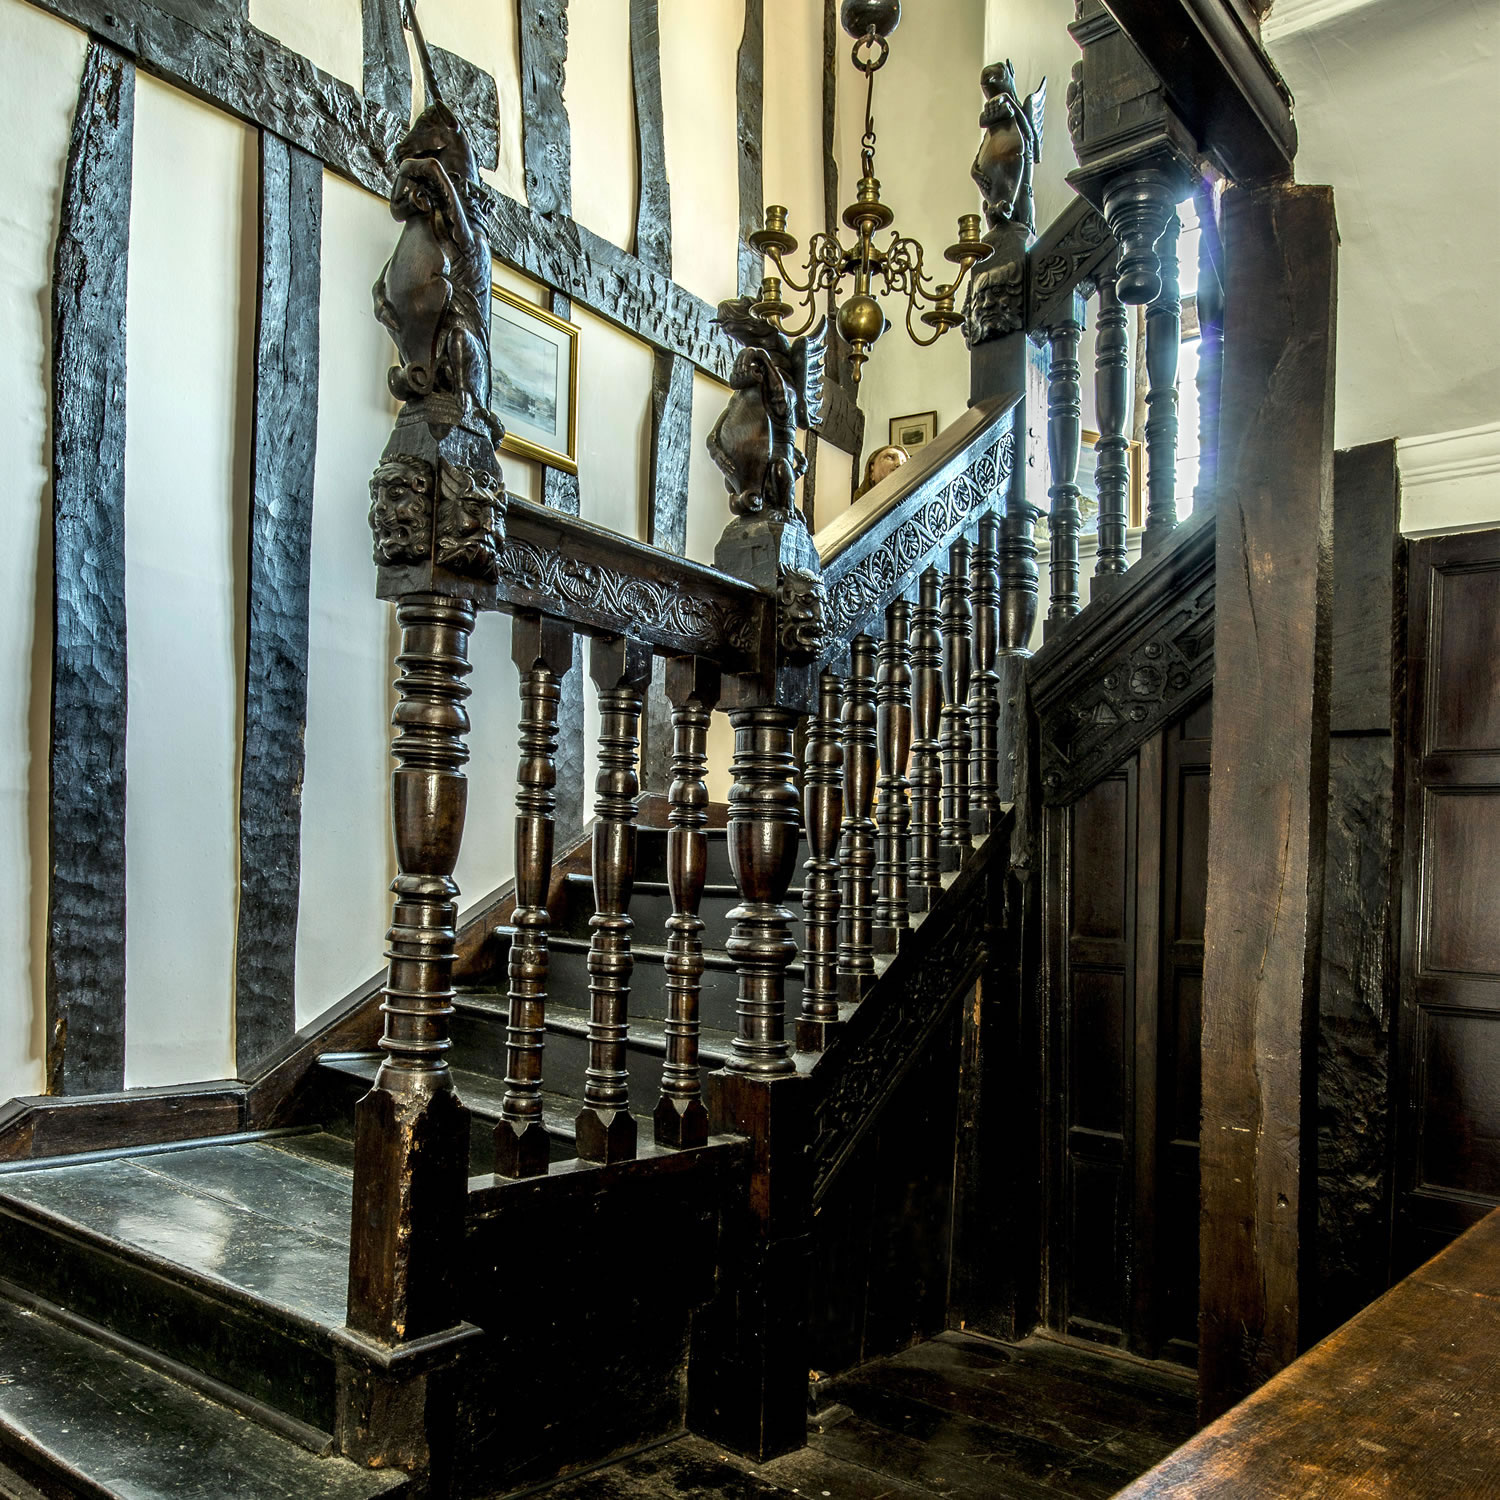 Restoration of a magnificent original C16th staircase in a Devonshire Manor